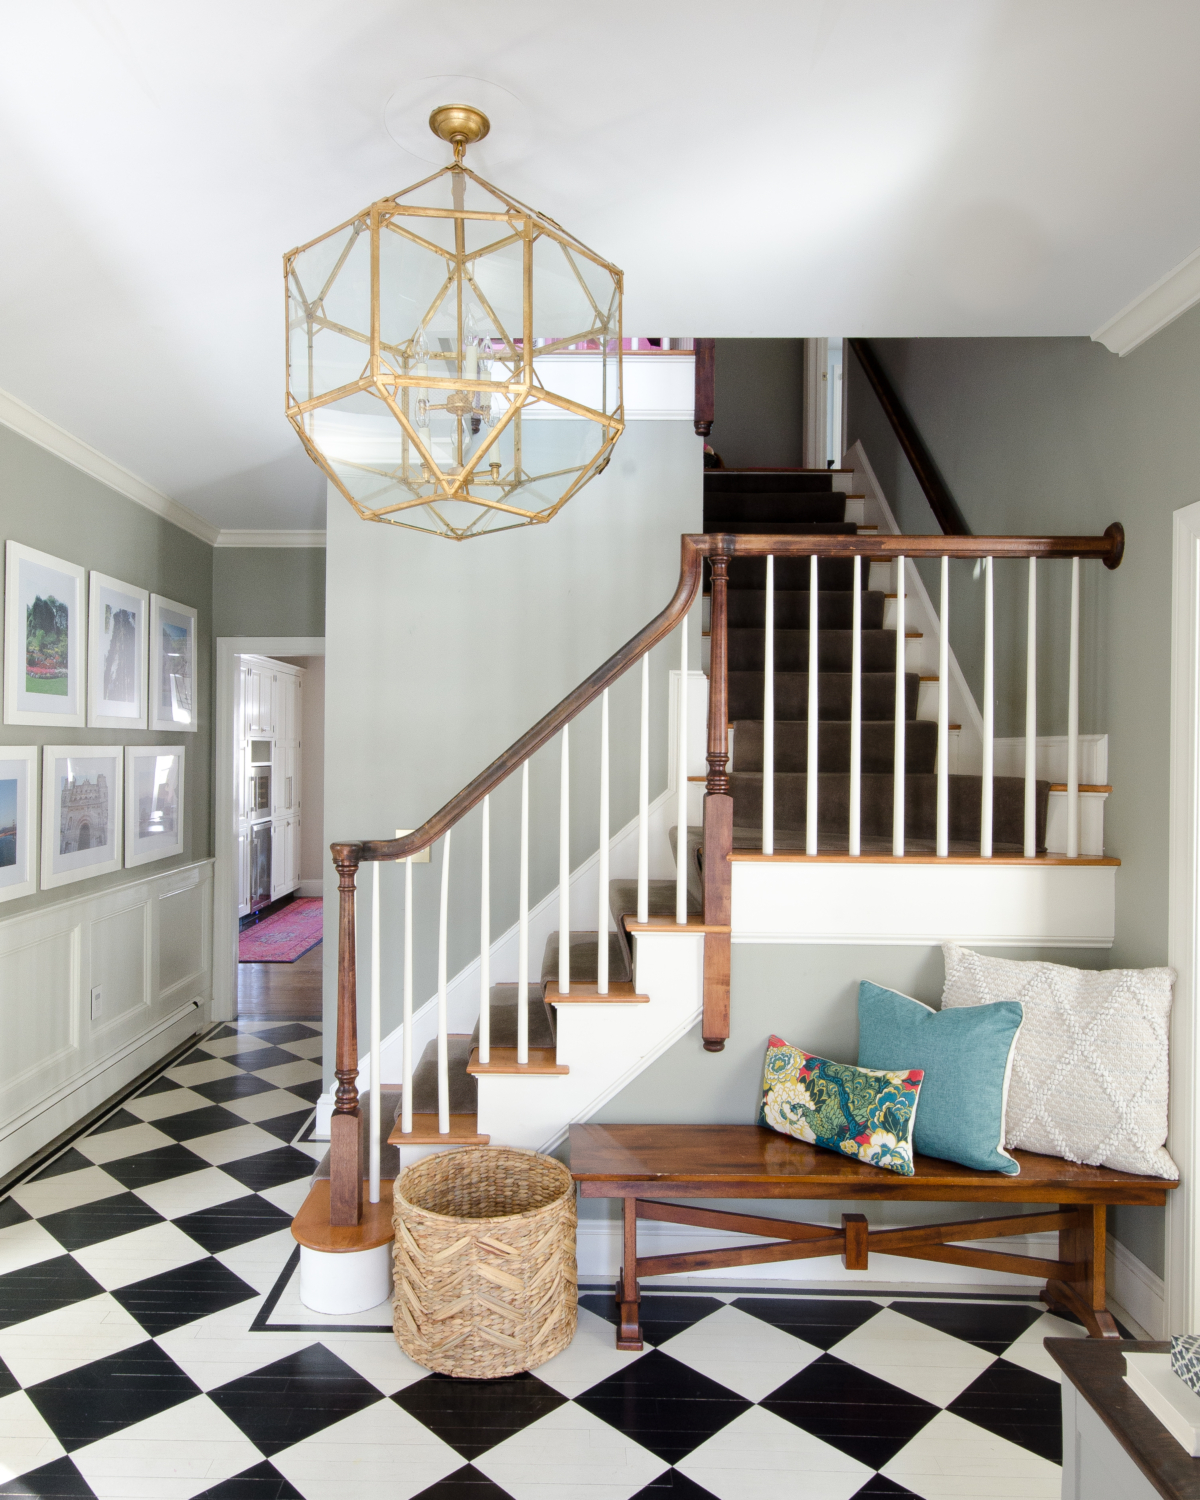 A stunning gold entryway light that is a dread ringer for the Circa Lighting Morris Lantern but at about a third of the price! Checkered floors and simple accents complete the updated classic look of this entry.